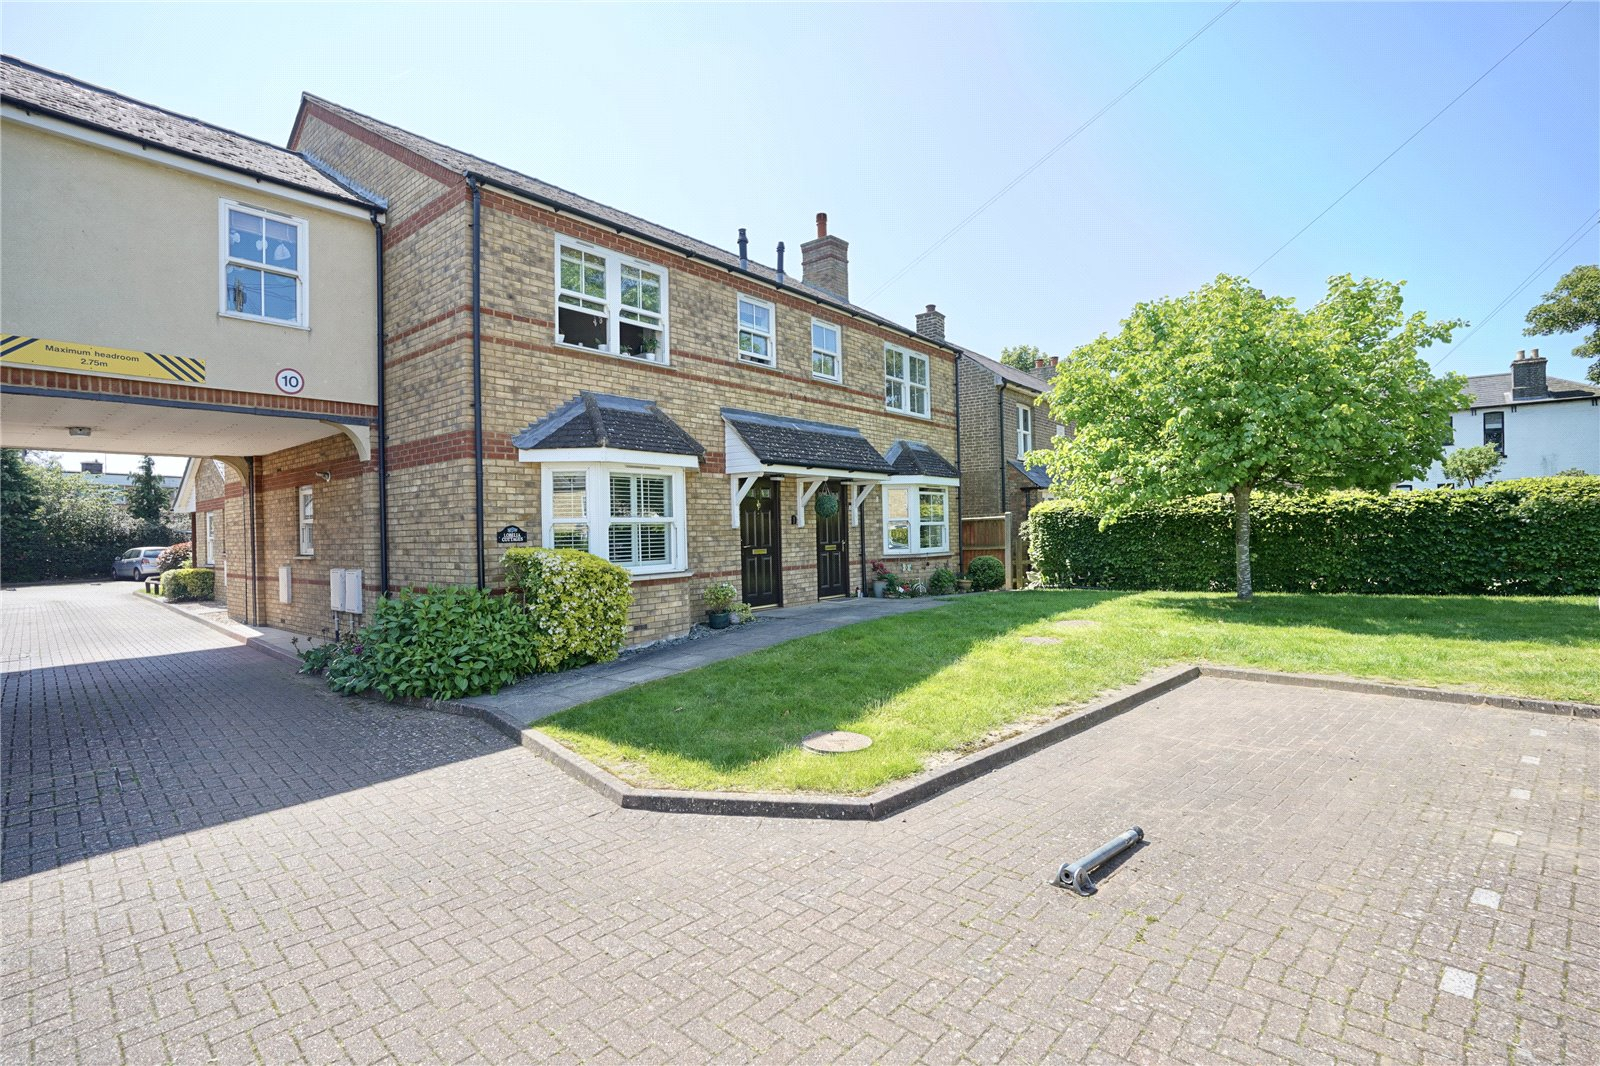 2 bed apartment for sale in St. Neots Road, Eaton Ford, PE19